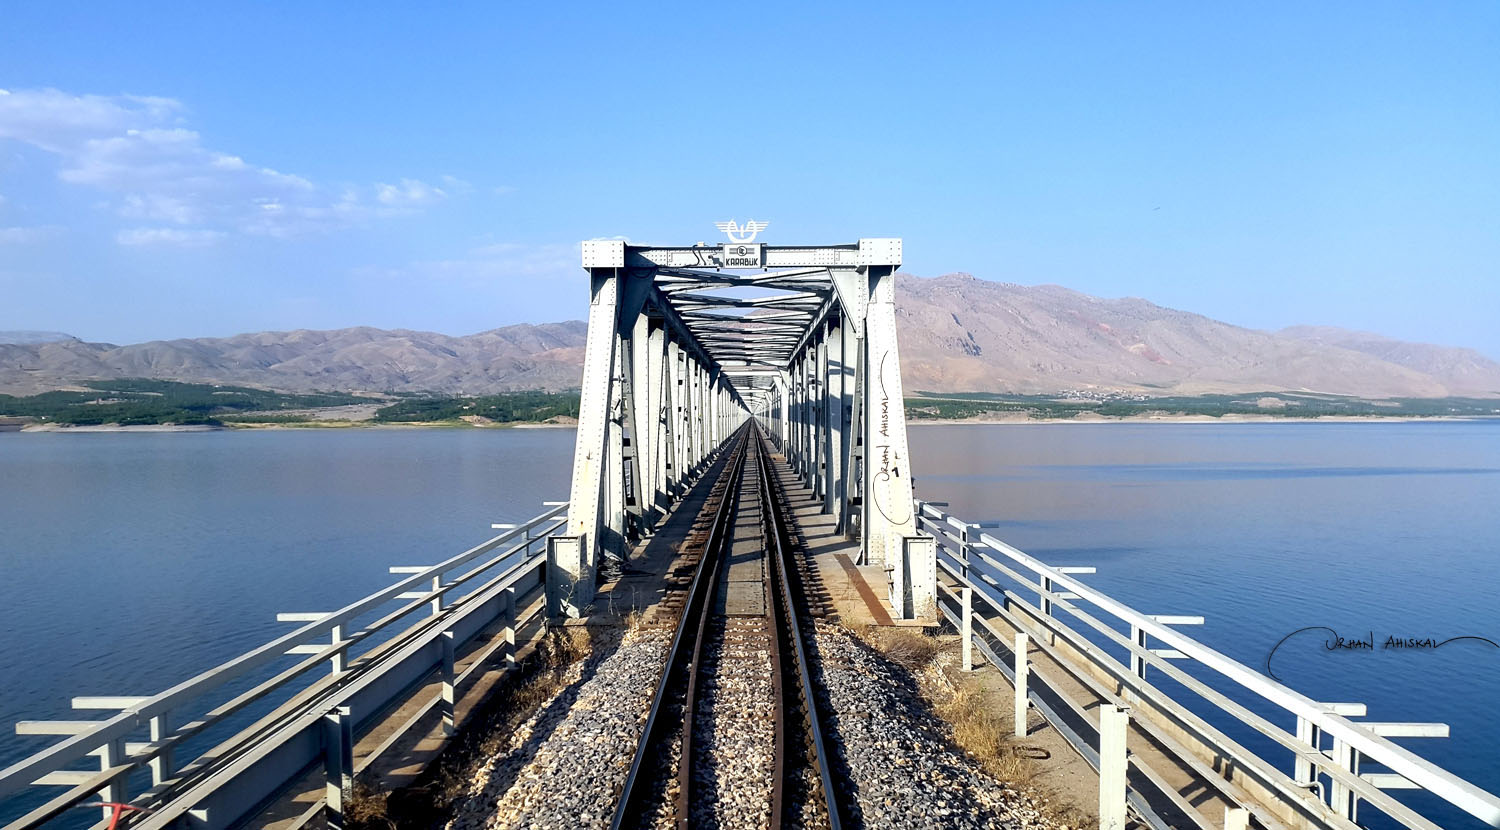 Rail bridge on Karakaya Dam lake, near Malatya. Photo: Orhan Ahıskal